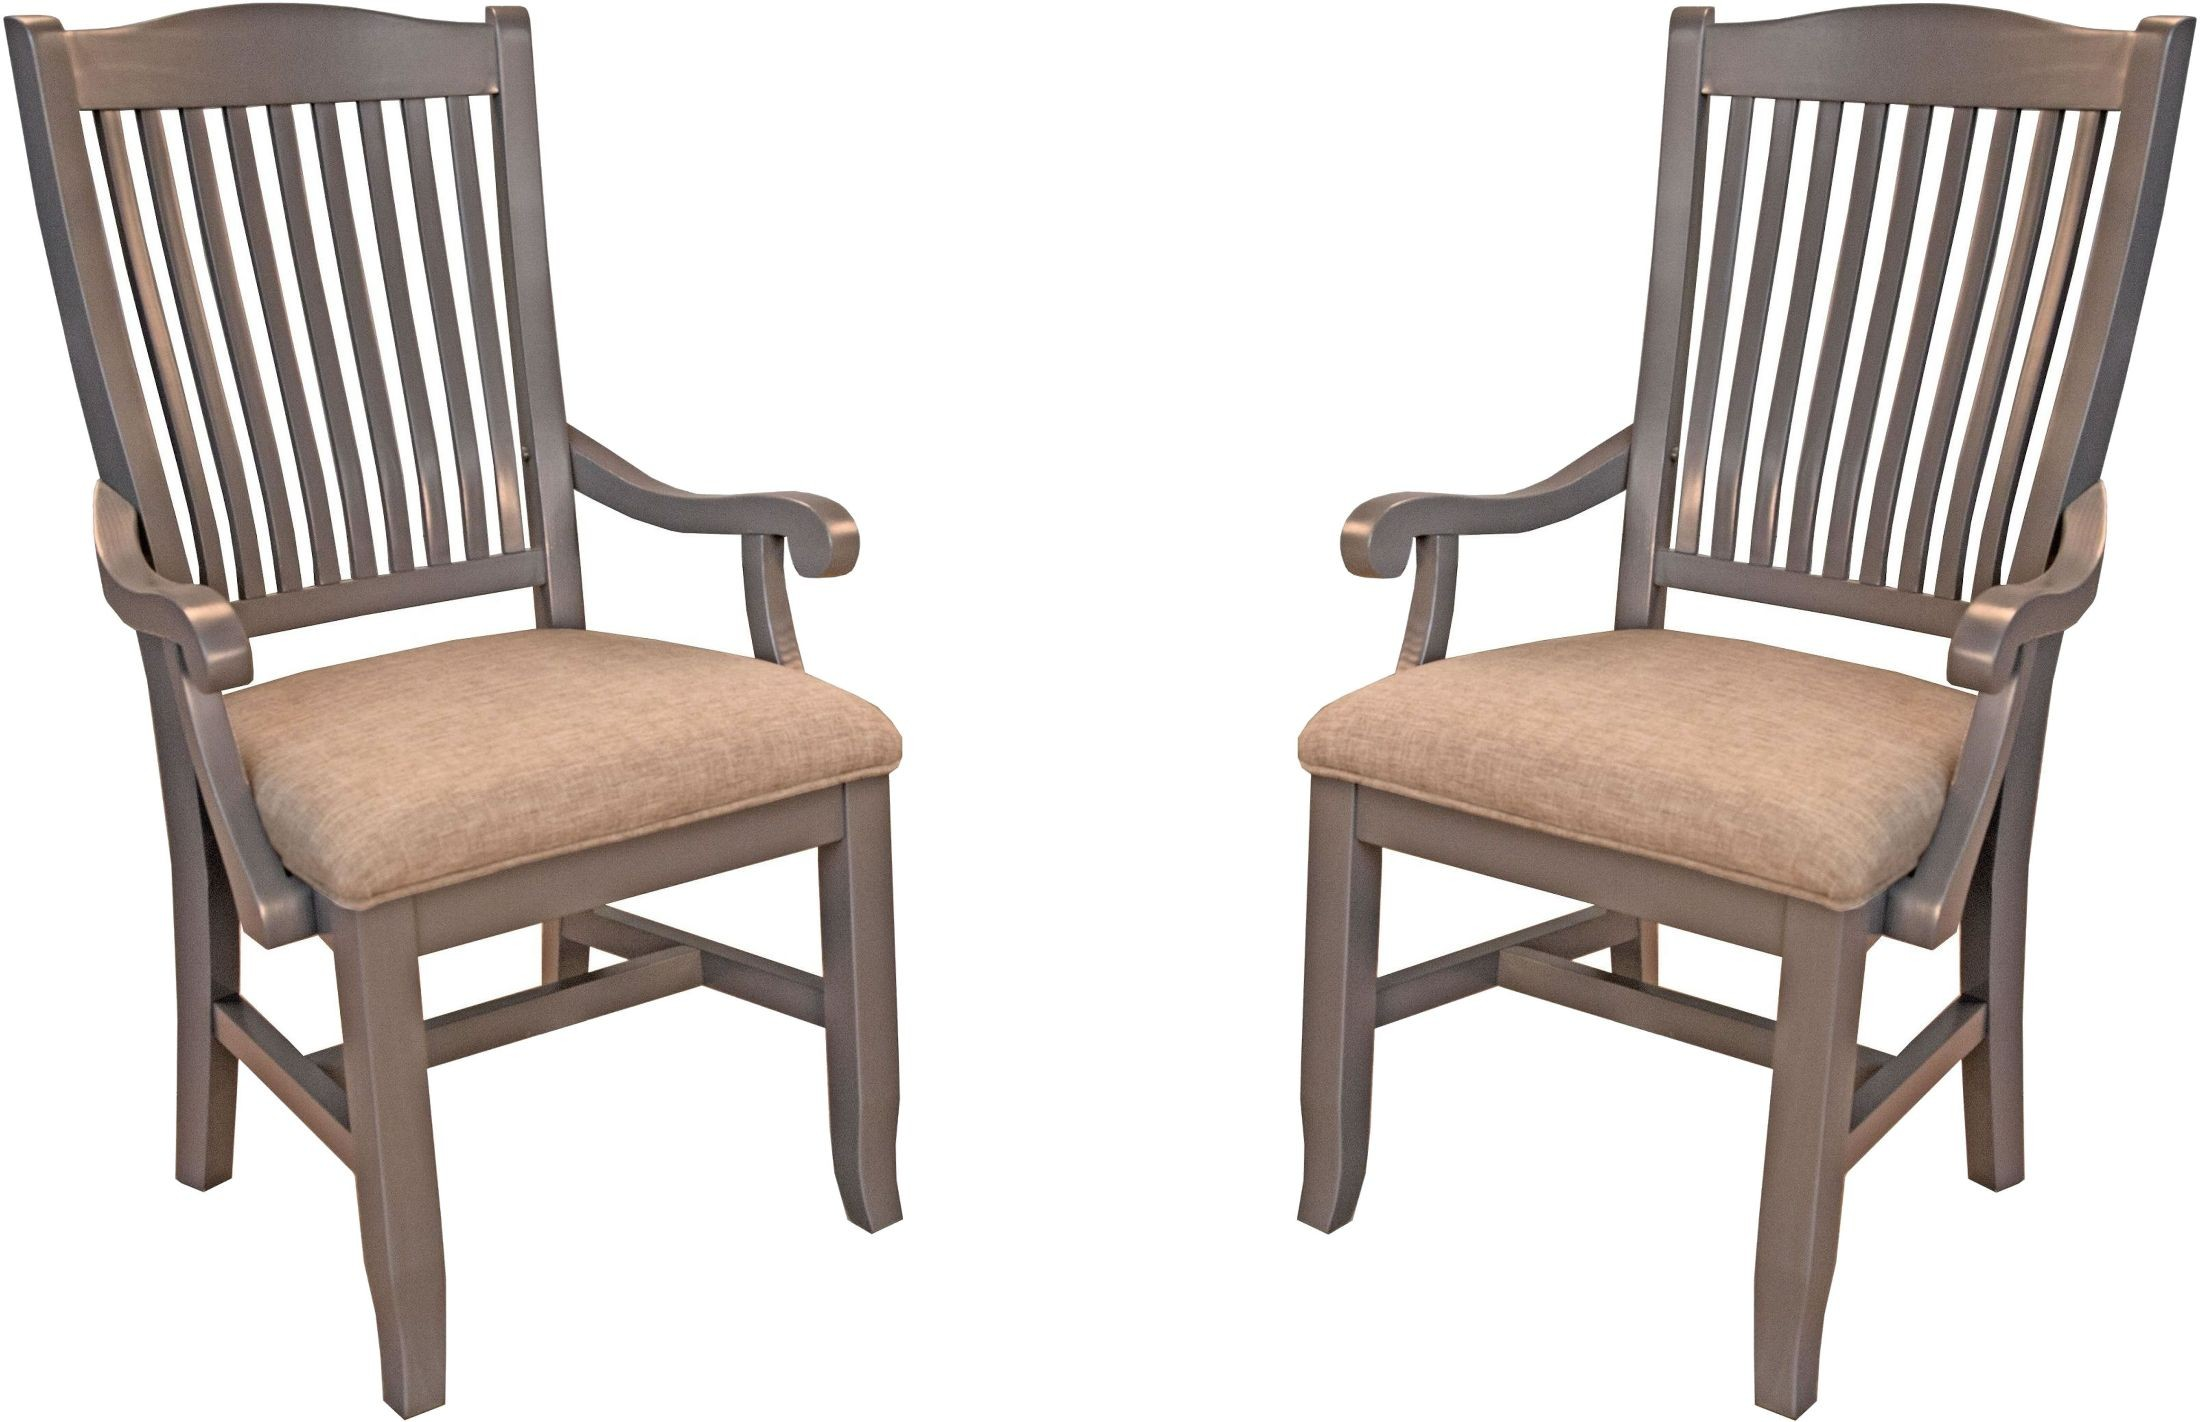 Grey Upholstered Chair Port Townsend Grey Slat Back Upholstered Arm Chair Set Of